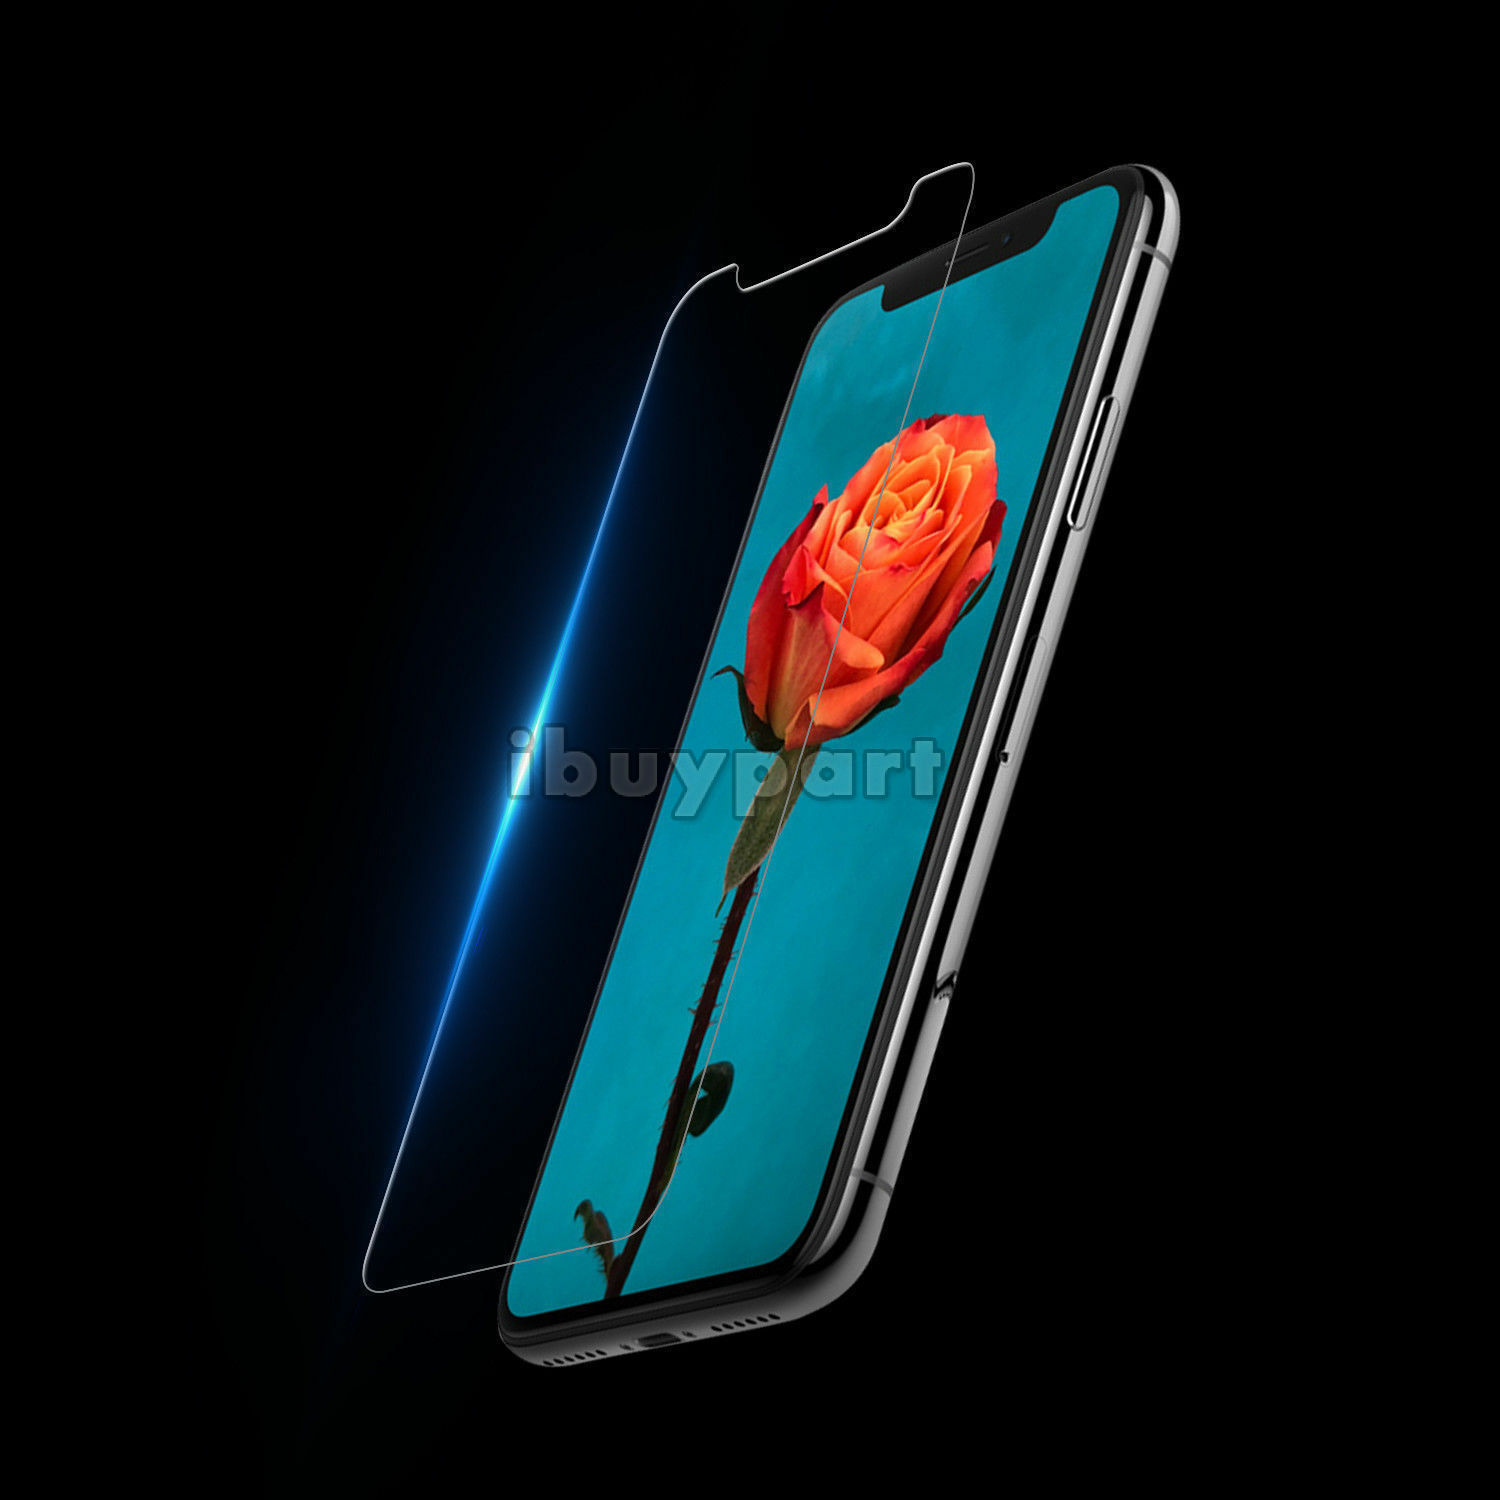 3-Pack-For-iPhone-11-Pro-11-Pro-Max-X-Xs-Max-XR-Tempered-Glass-Screen-Protector thumbnail 25